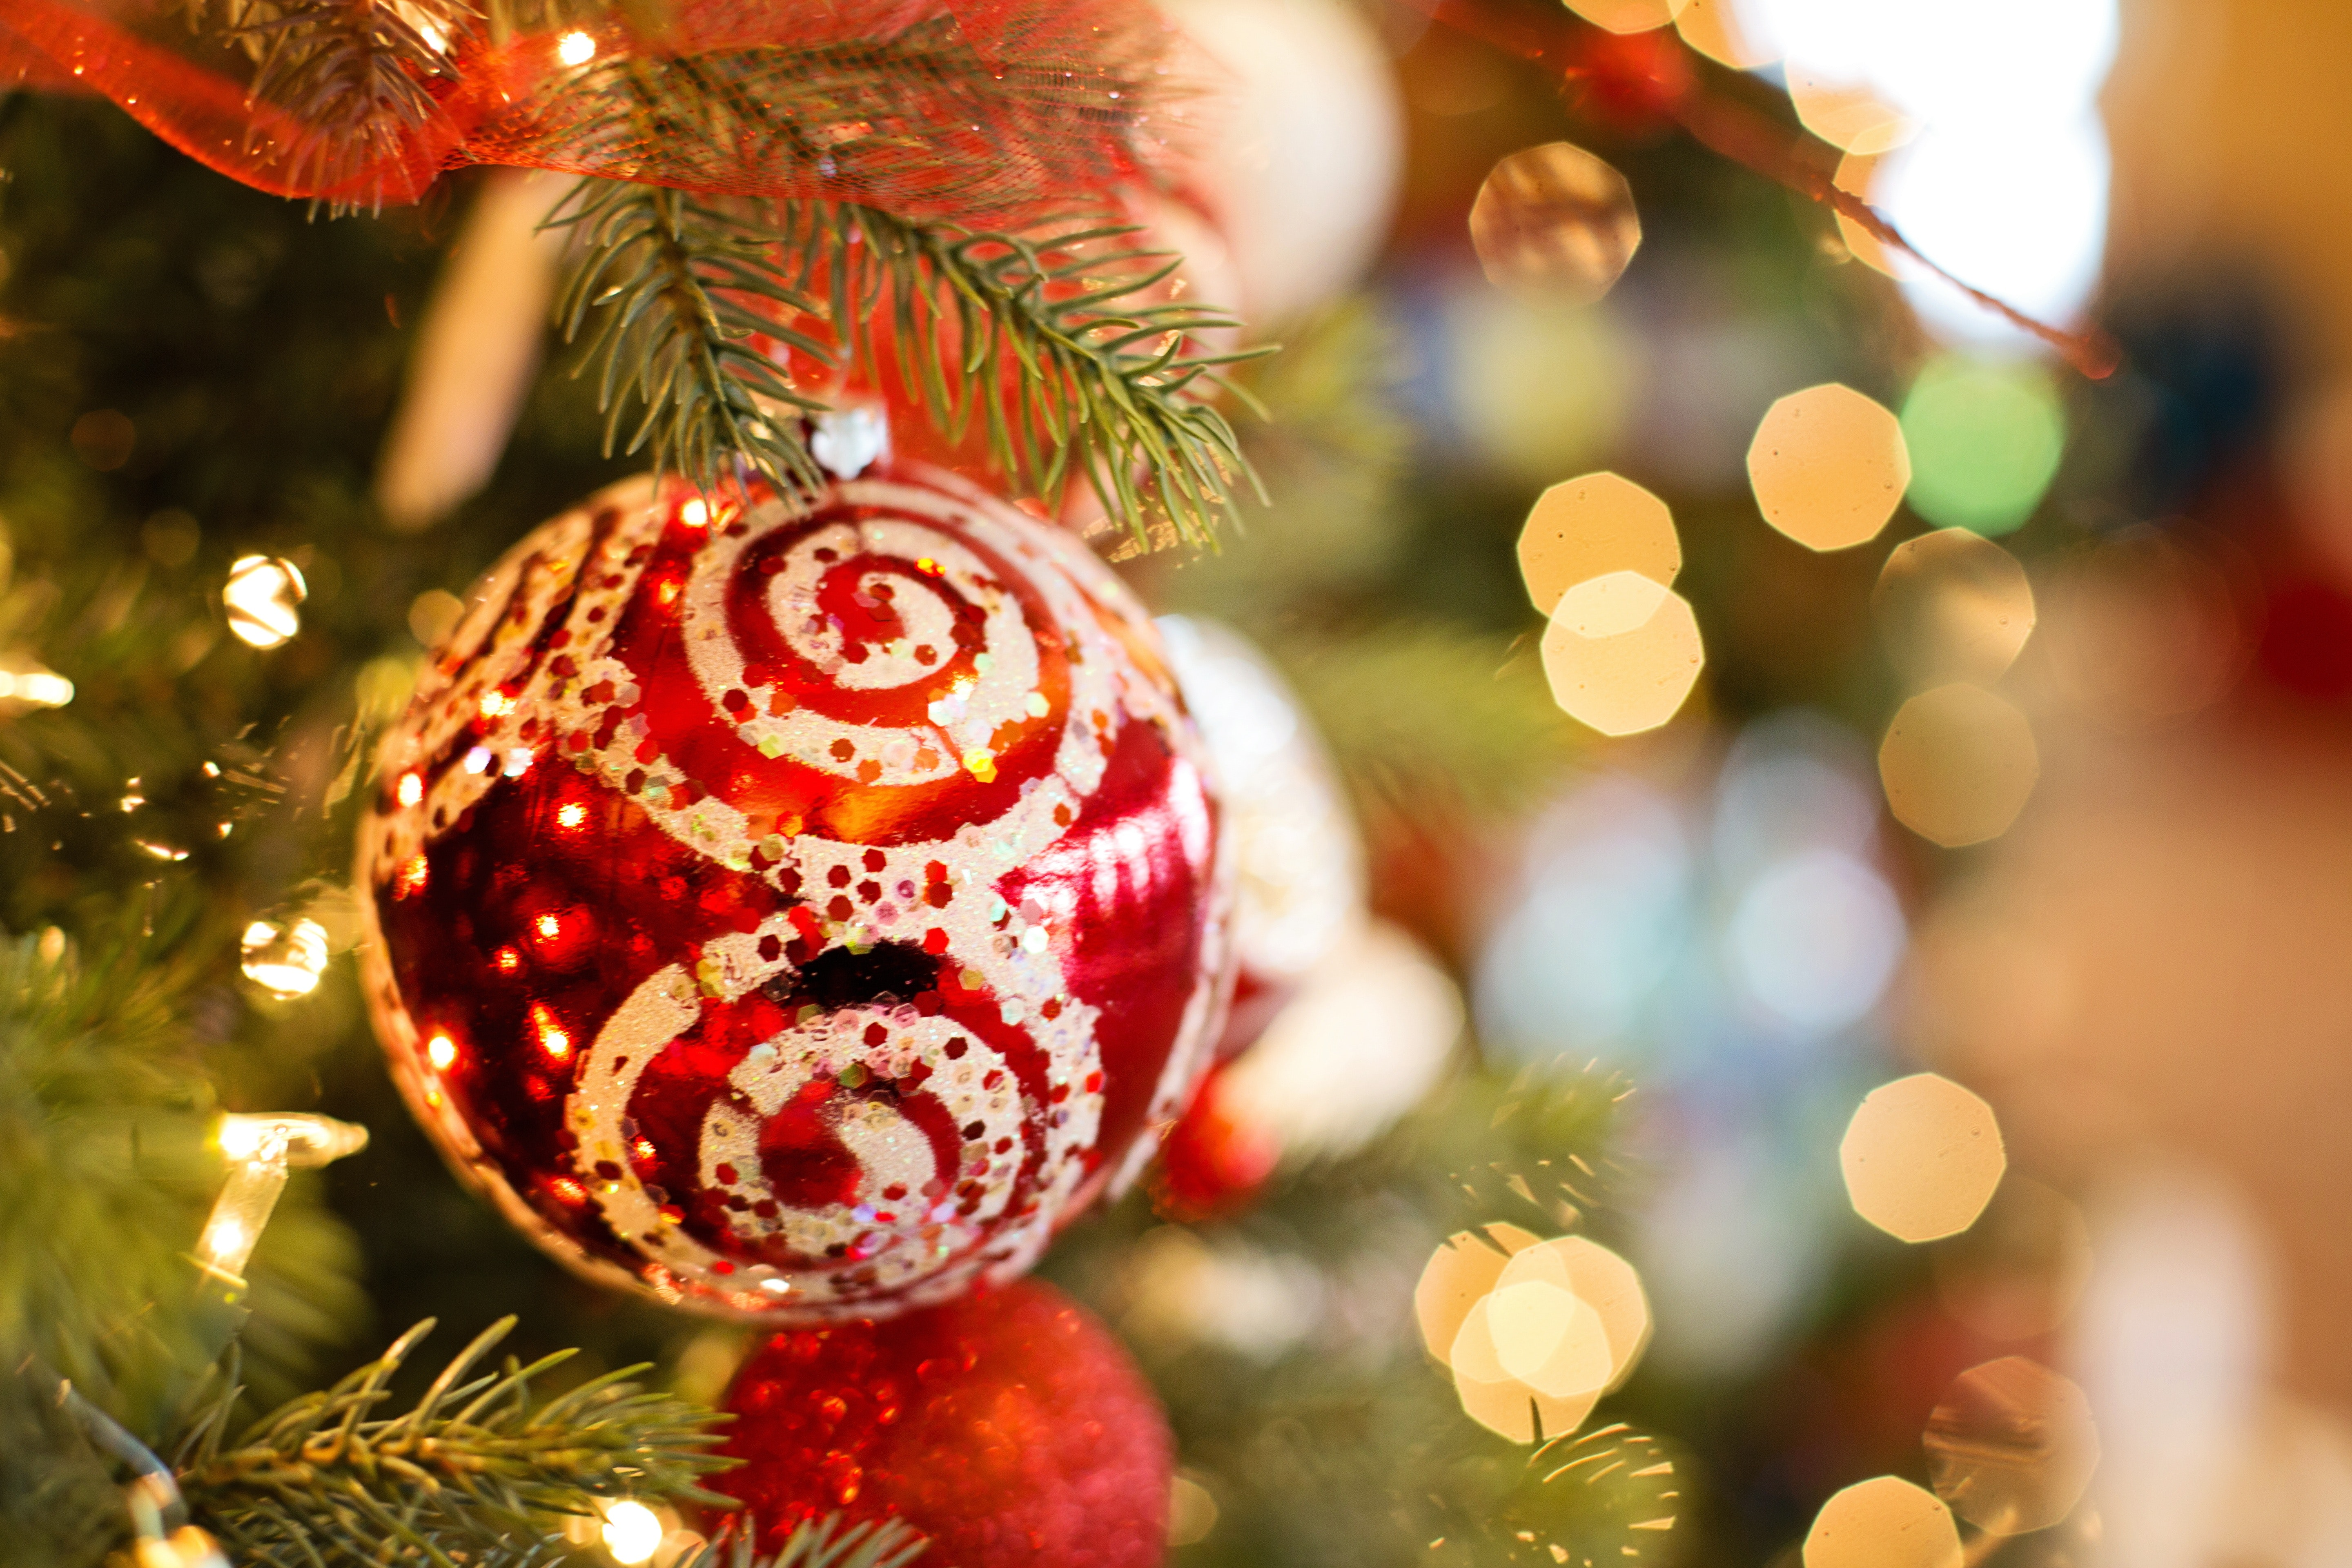 Beautiful Christmas Pictures.Super Big And Beautiful Christmas Photos That You Can Use As